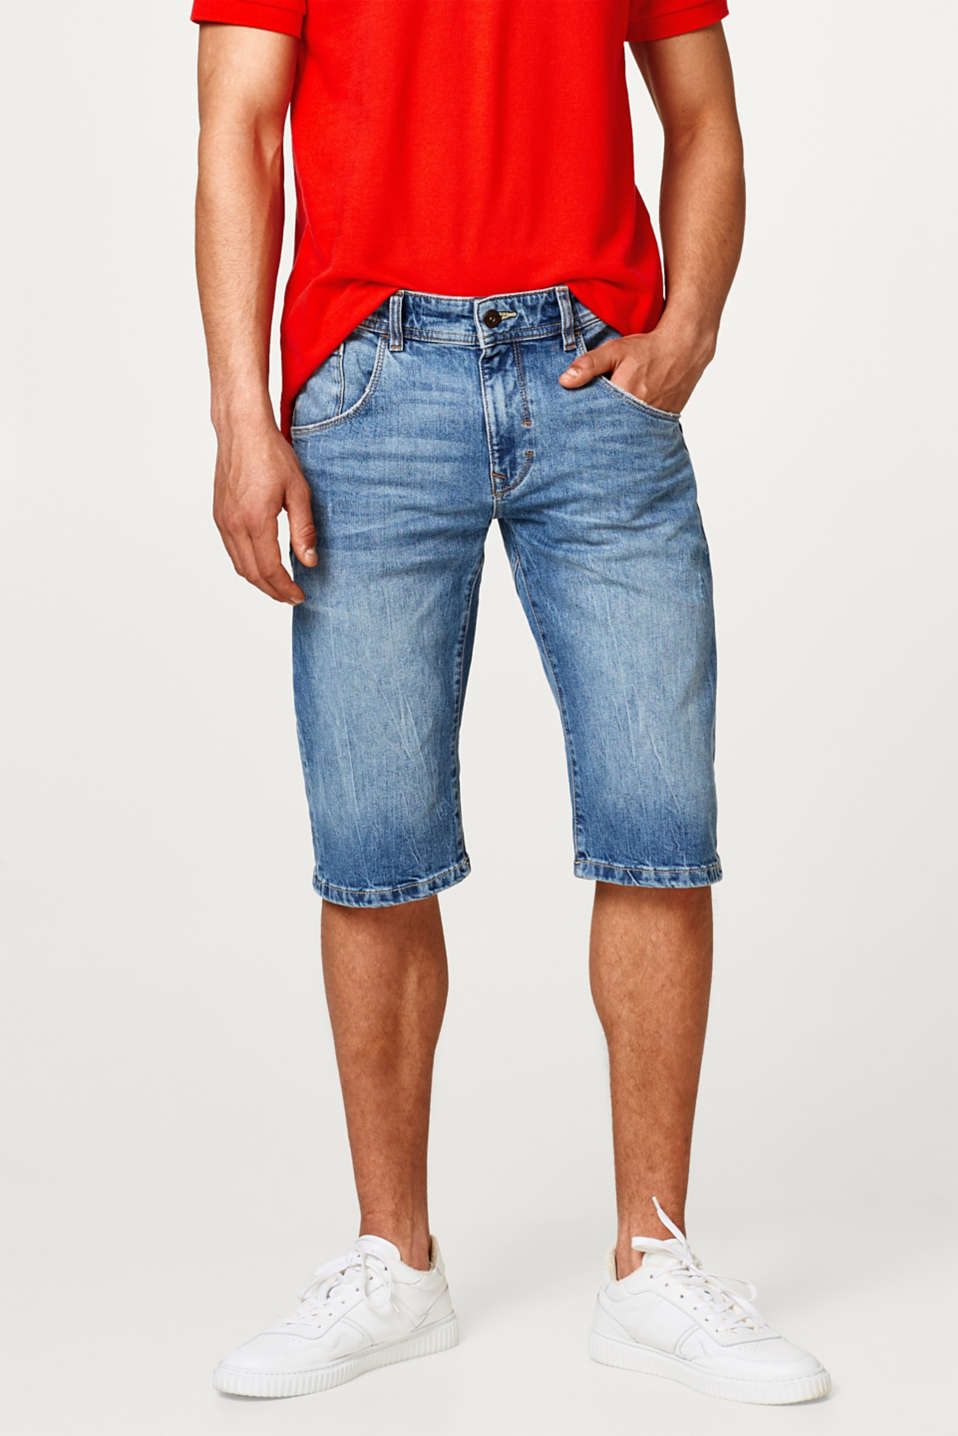 Esprit - Denim shorts made of recycled cotton